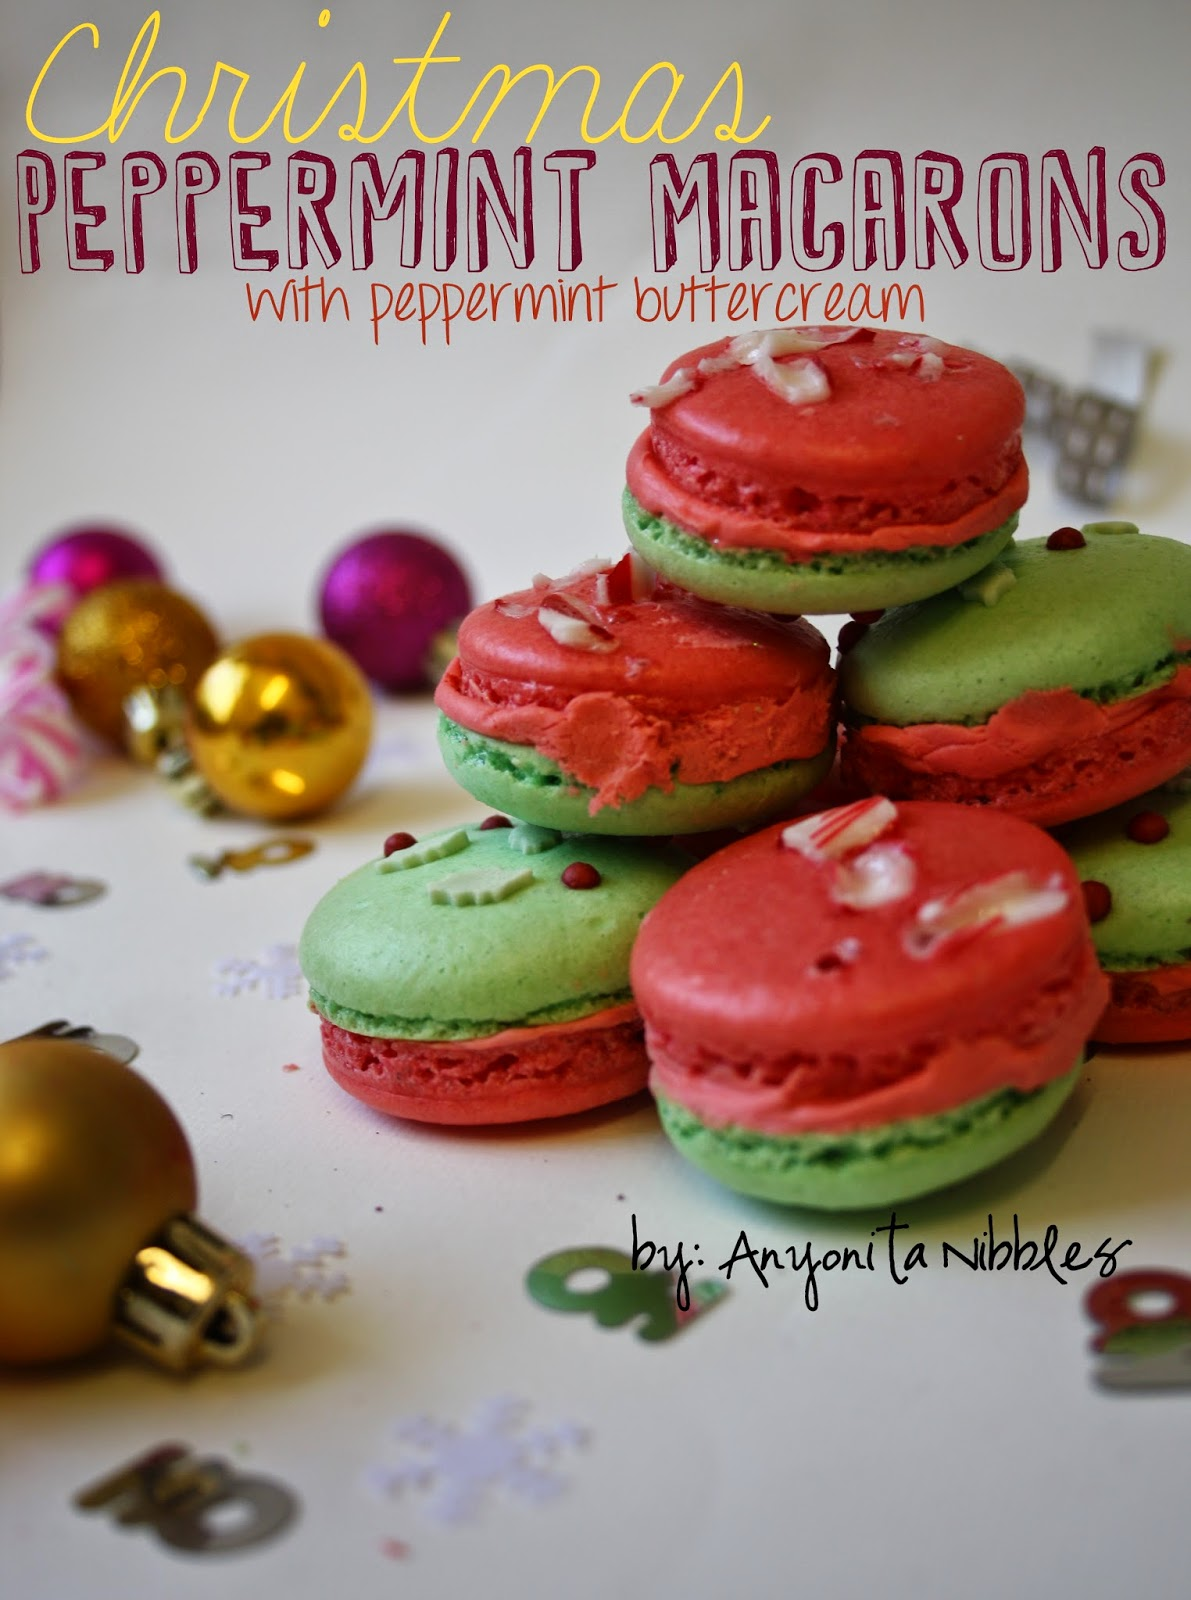 Gluten Free Christmas Peppermint Macarons with Peppermint Buttercream from anyonita-nibbles.co.uk